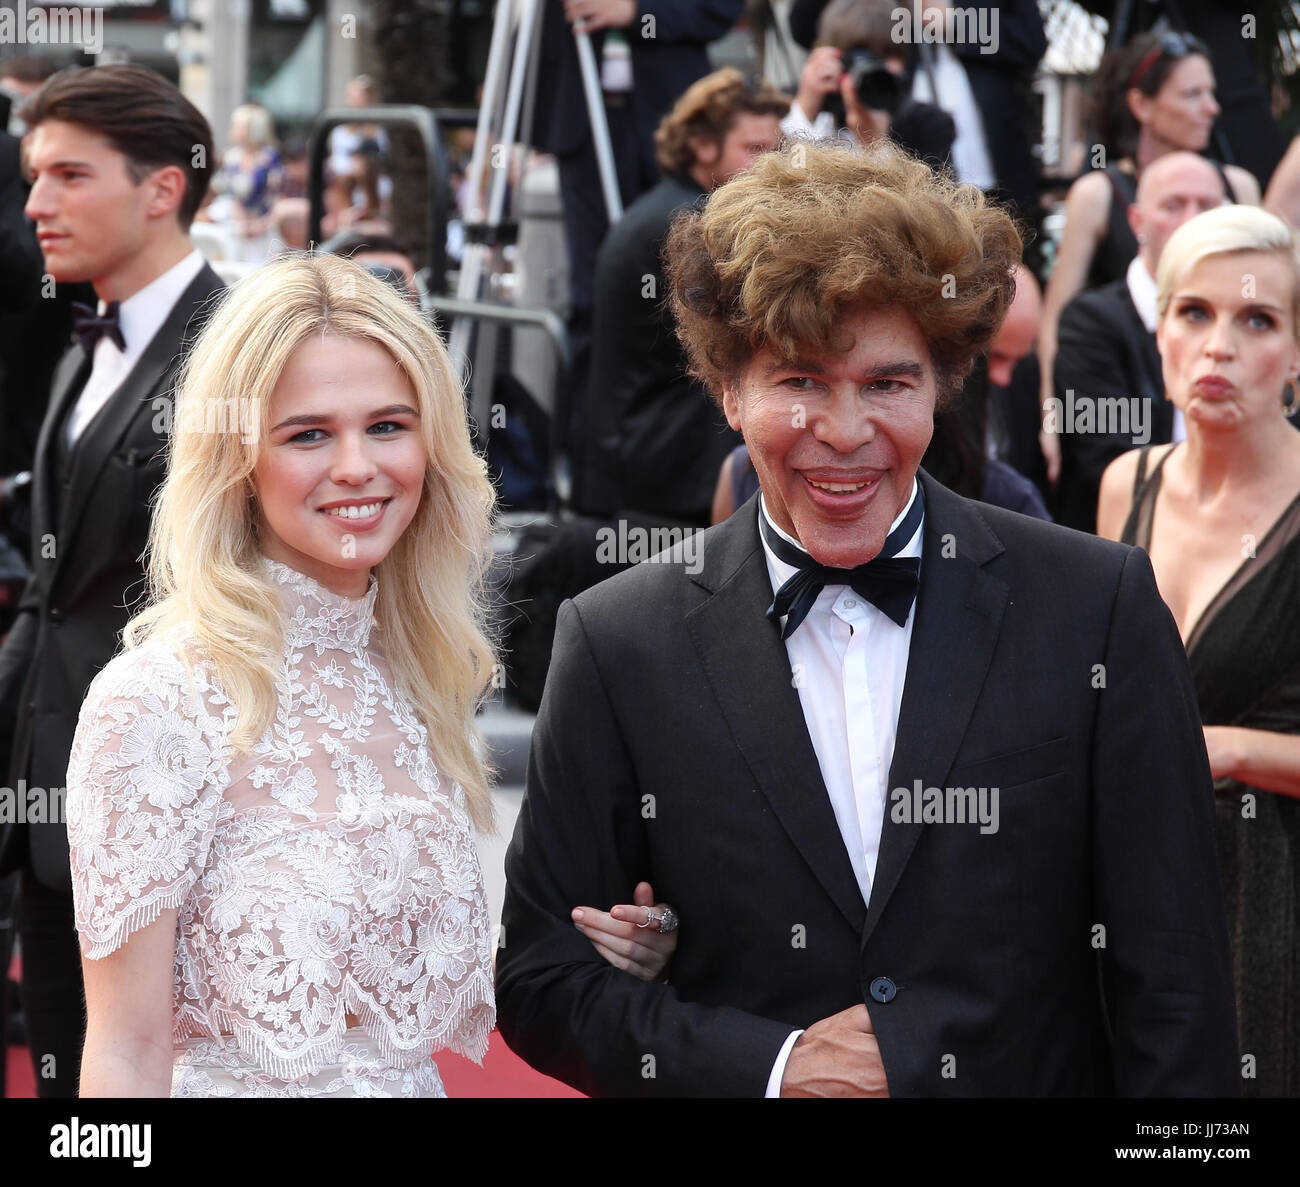 Sarah barzyk twin peaks premiere at cannes film festival new picture